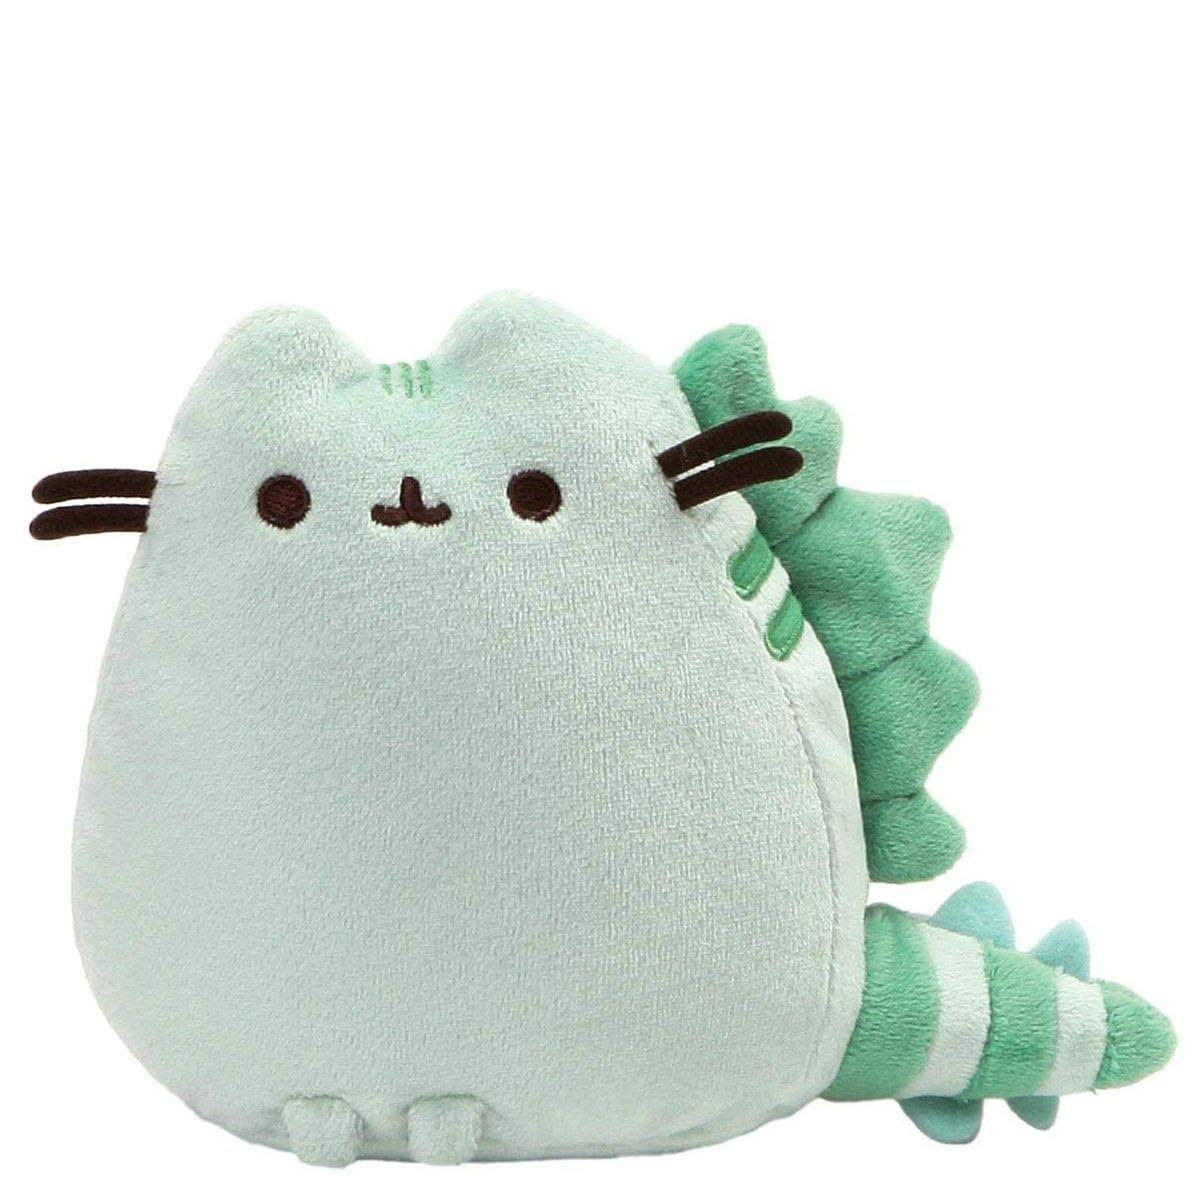 GUND Pusheen Pusheenosaurus Dinosaur Cat Plush Stuffed Animal - Green, 6""